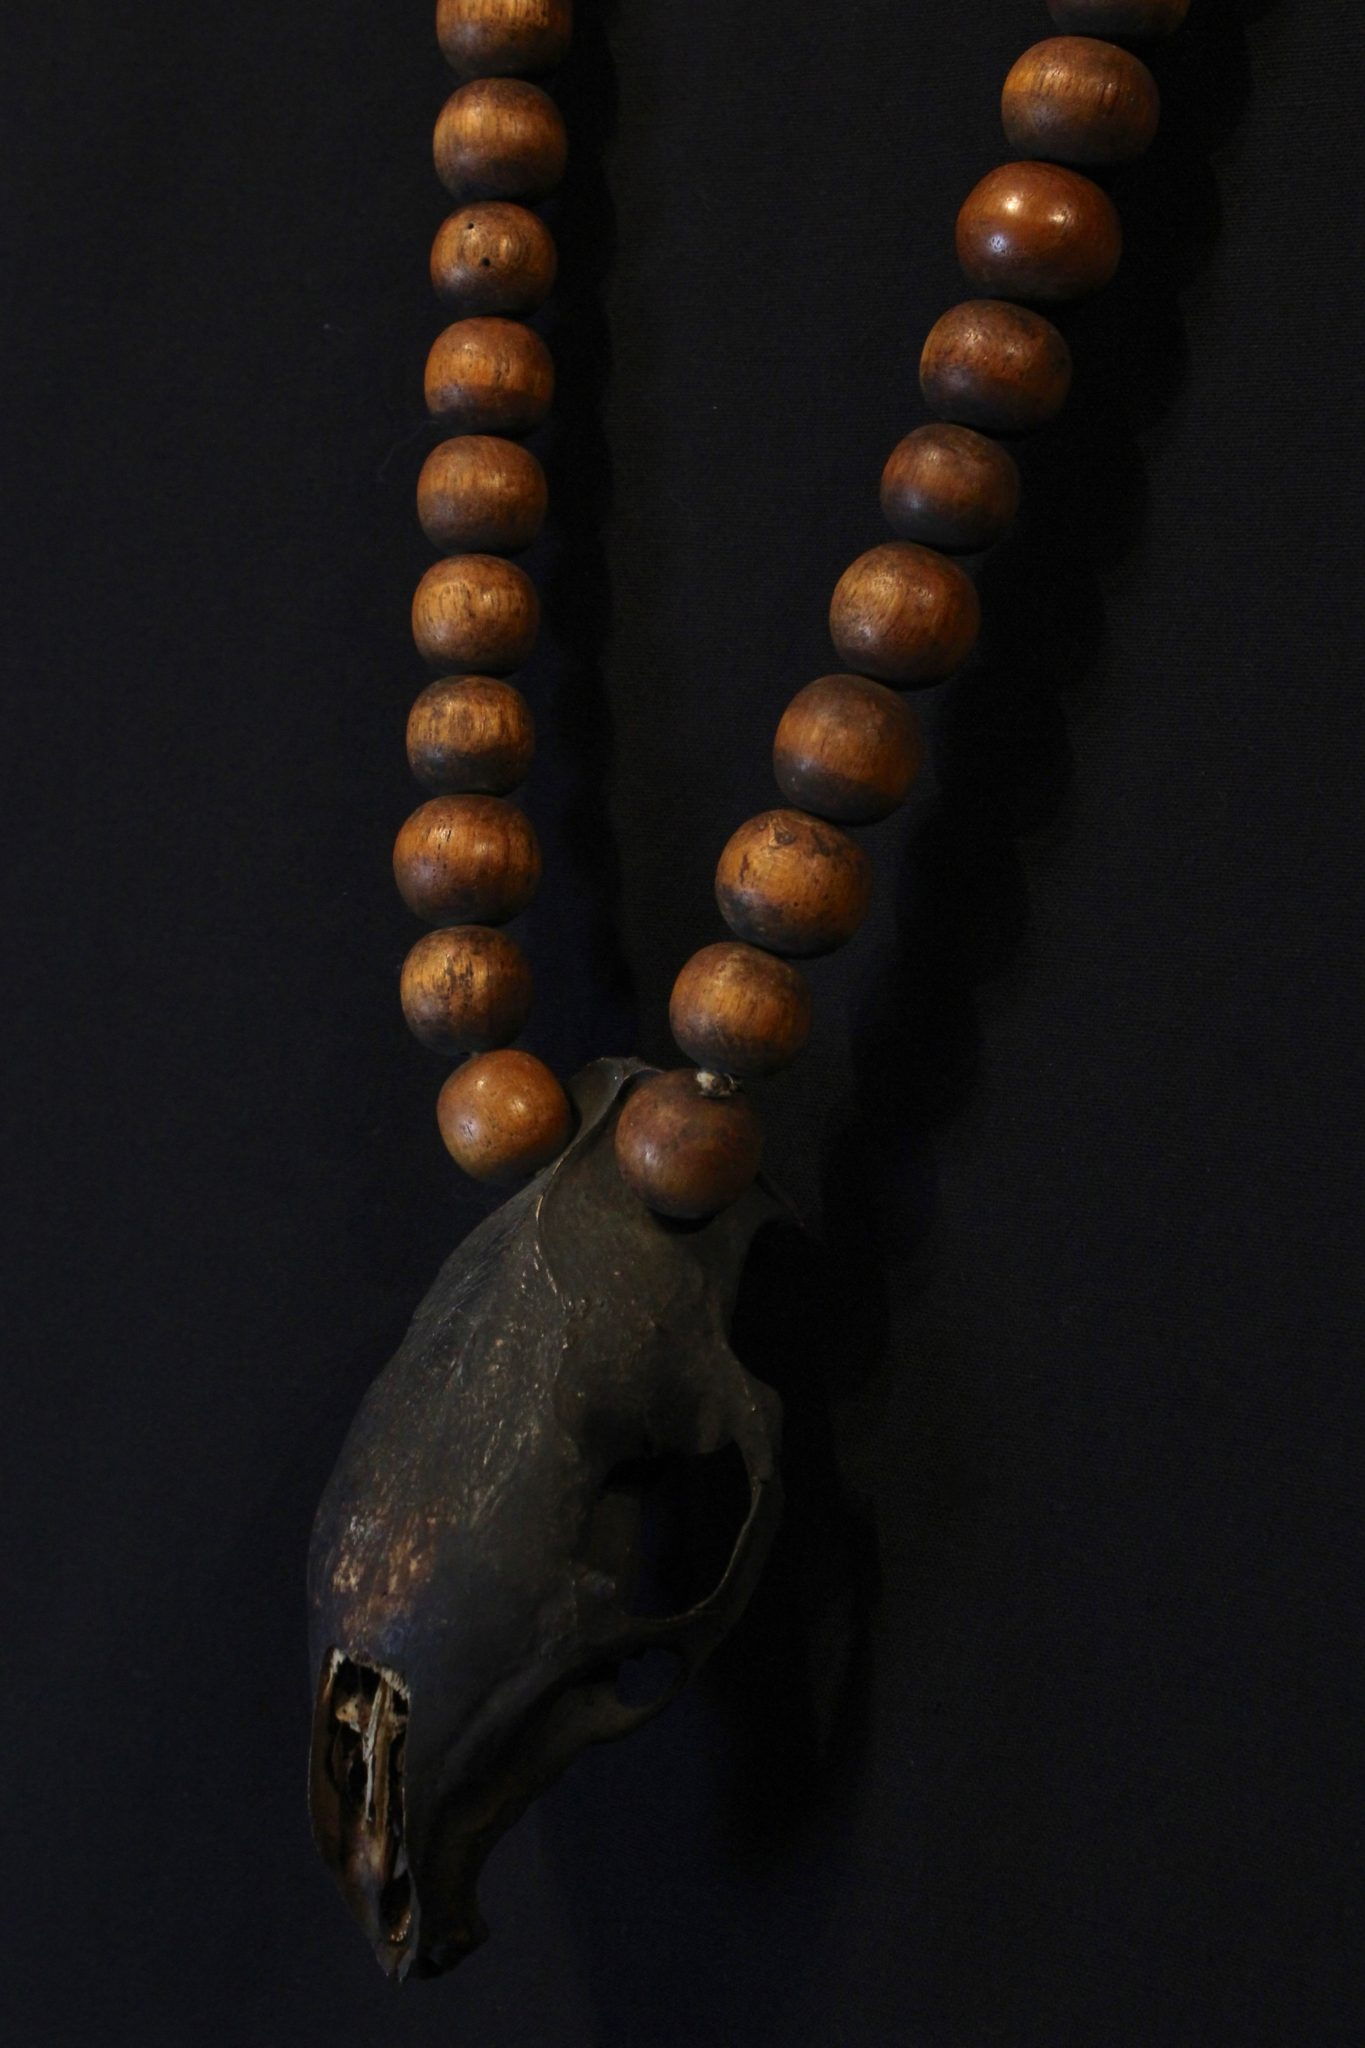 """Skull Necklace Kalimantan, Borneo, Indonesia, Dayak tribe, Early 20th c, Wooden Beads, Rodent Skull, darkened with soot. Worn for healing and protection rituals 17 ½"""" x 2 ¾"""" x 1 ¾"""", $450."""